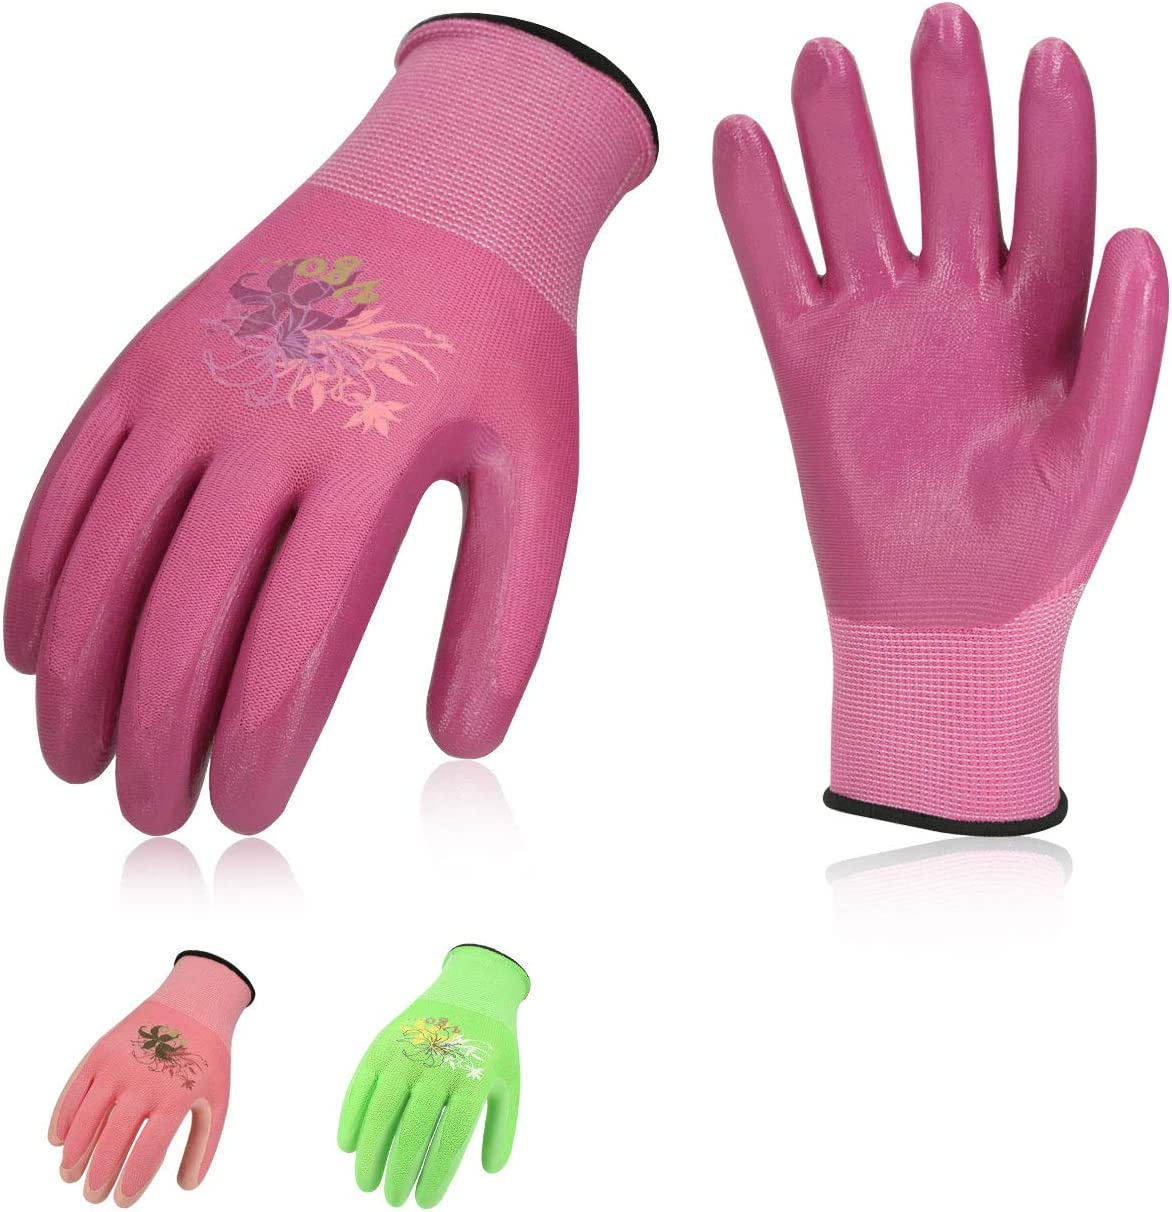 Vgo 3Pairs Ladies' Nitrile Coating Gardening and Work Gloves (Size L, Green & Pink & Purple, NT2110)